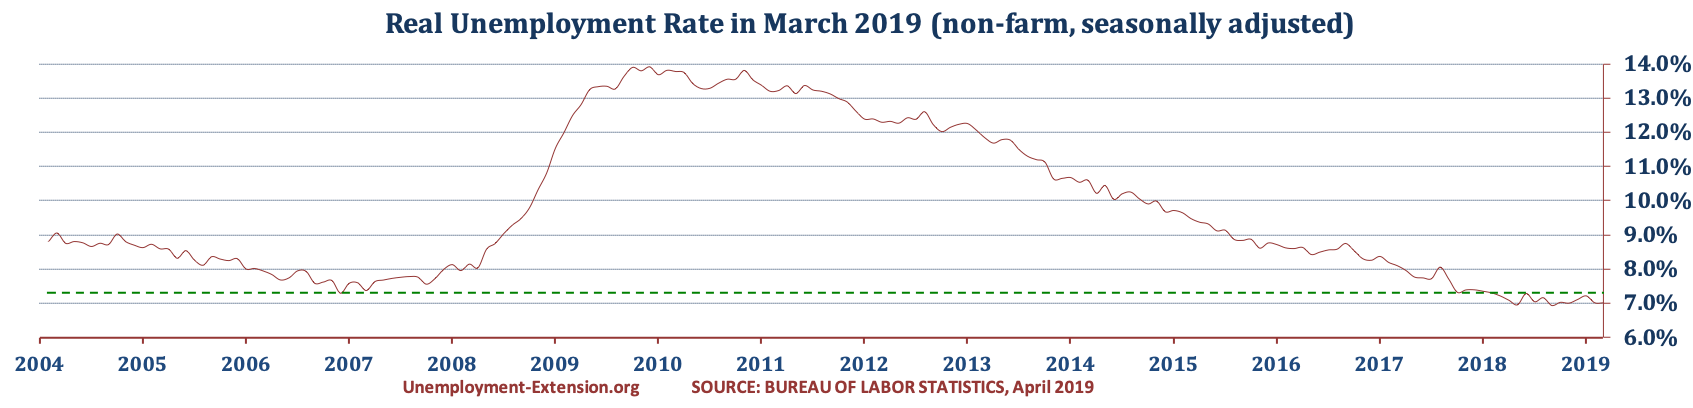 US Real National Unemployment Rate in March of 2019 is 7.0% (7.0% in February, 7.2% in January of 2019, and 7.1% in December of 2018).